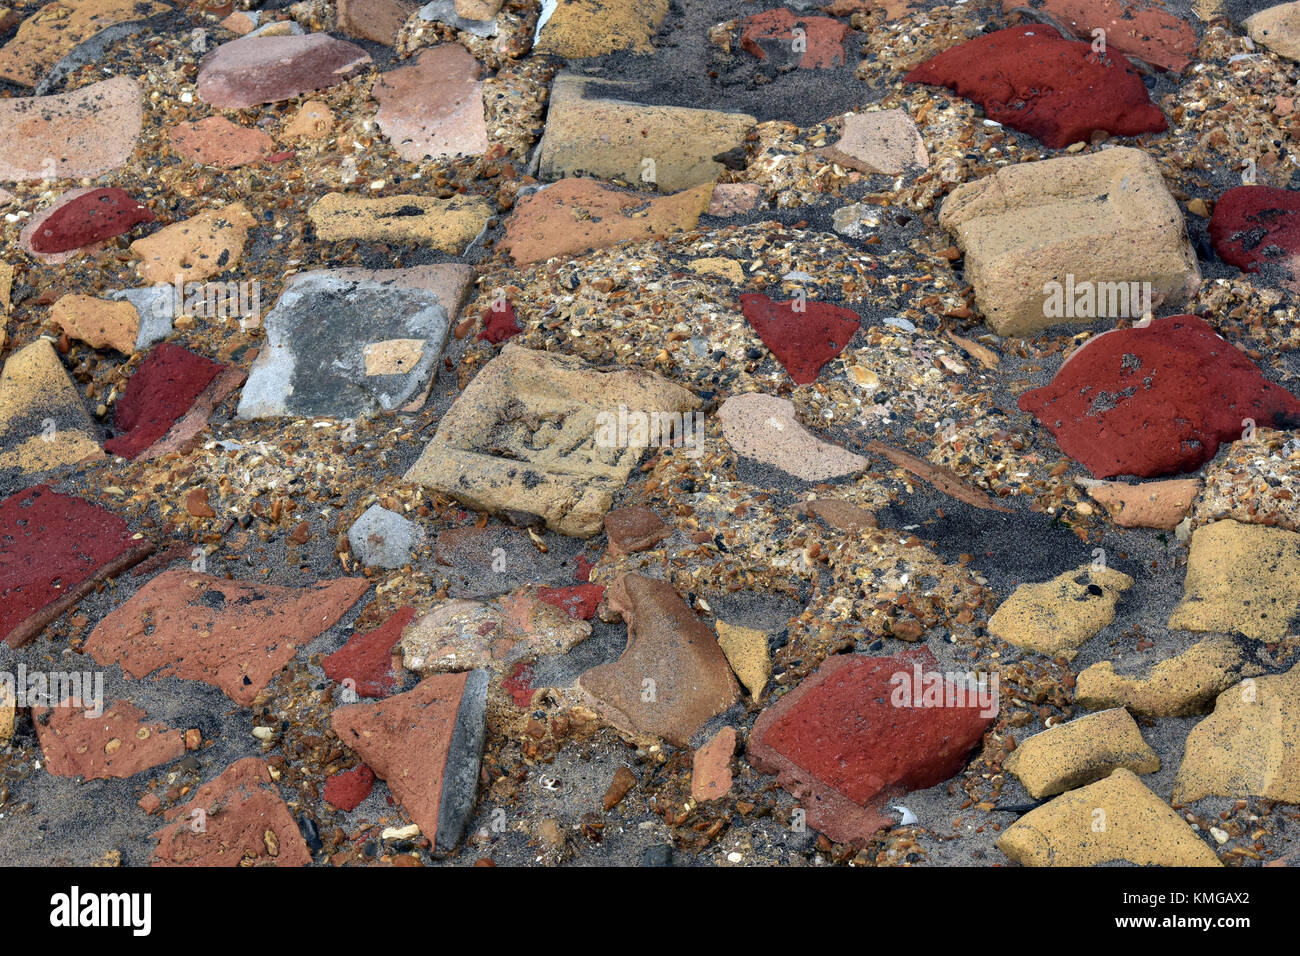 a selection of different pieces of broken building bricks, stones and materials set in some concrete in a random - Stock Image